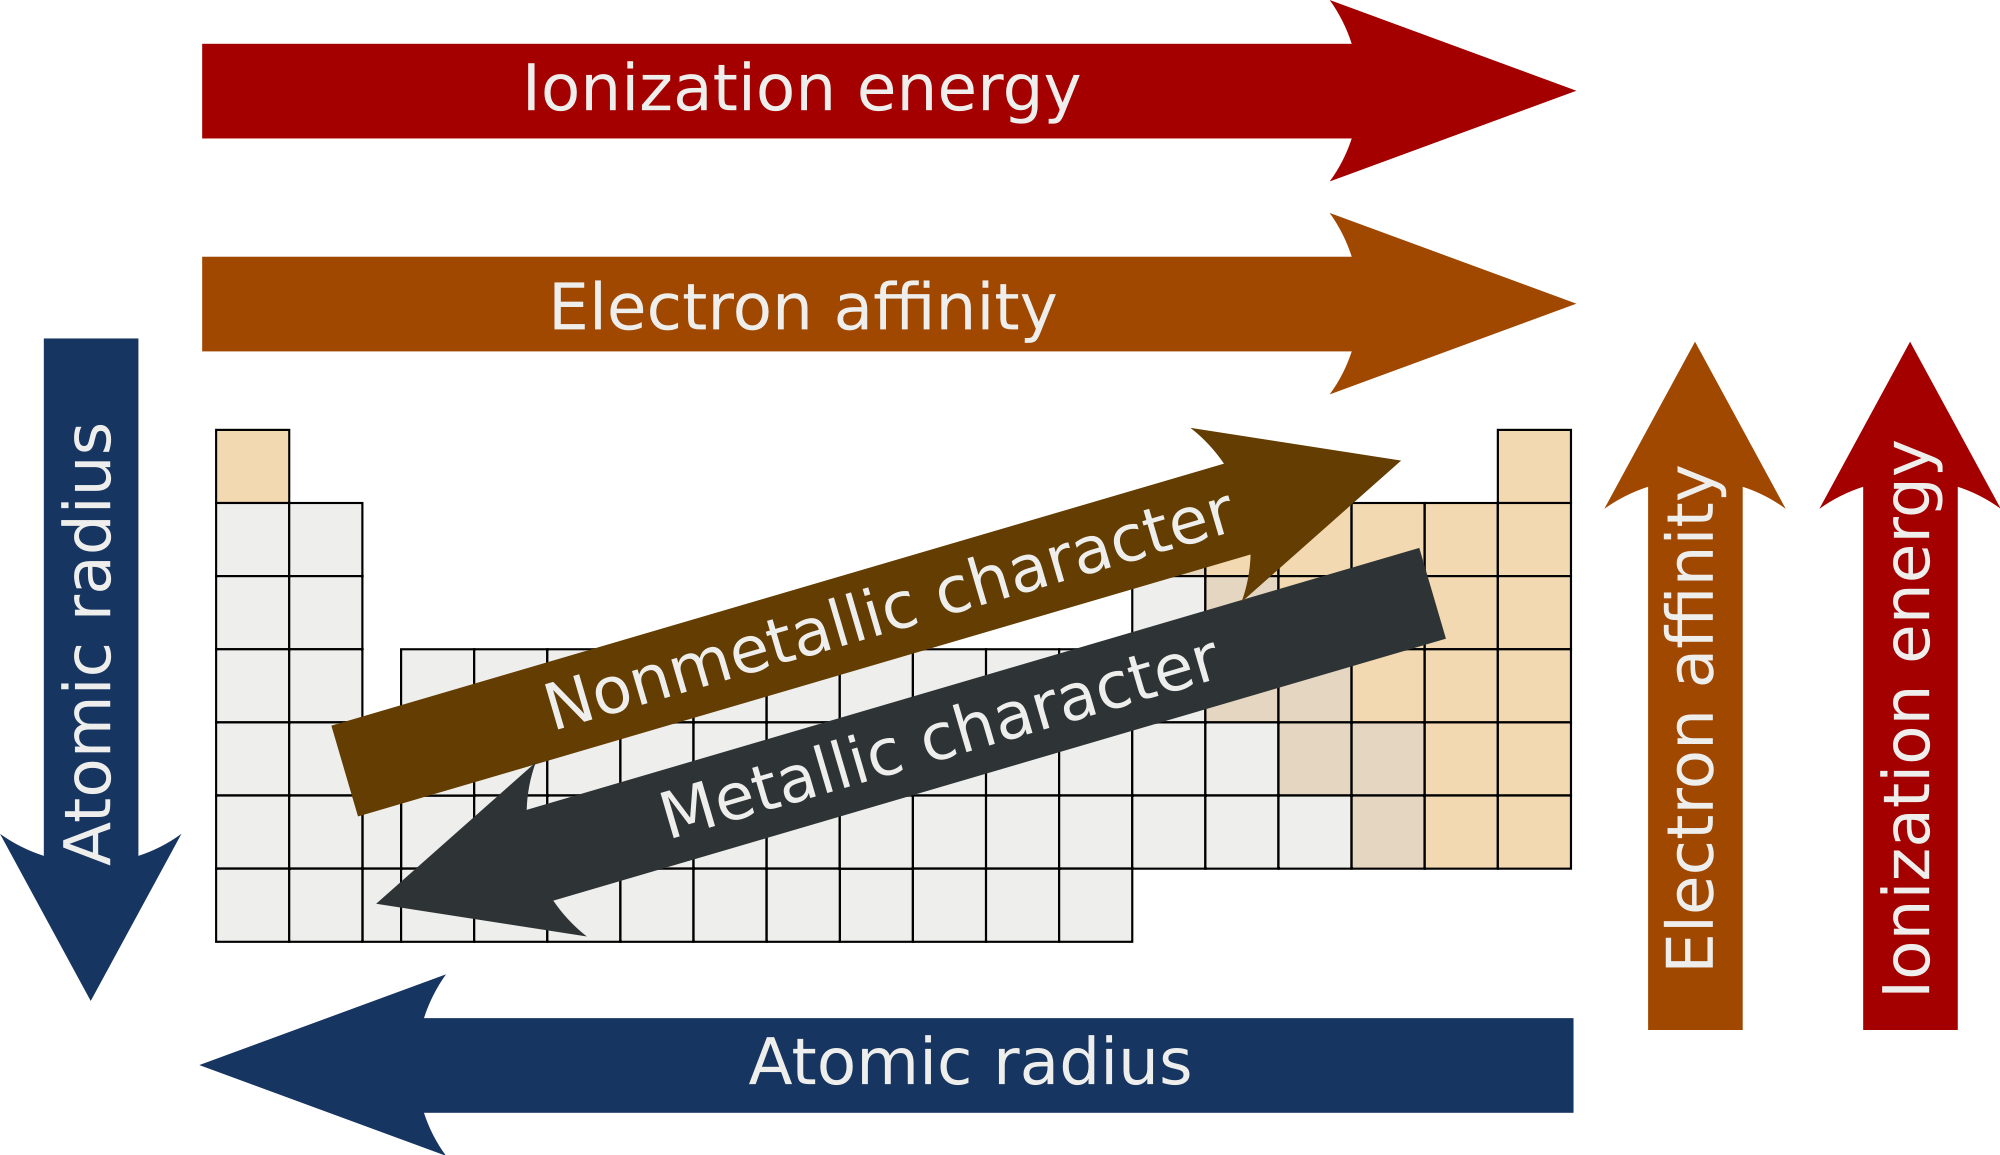 Electronegativity Change Across Periodic Table